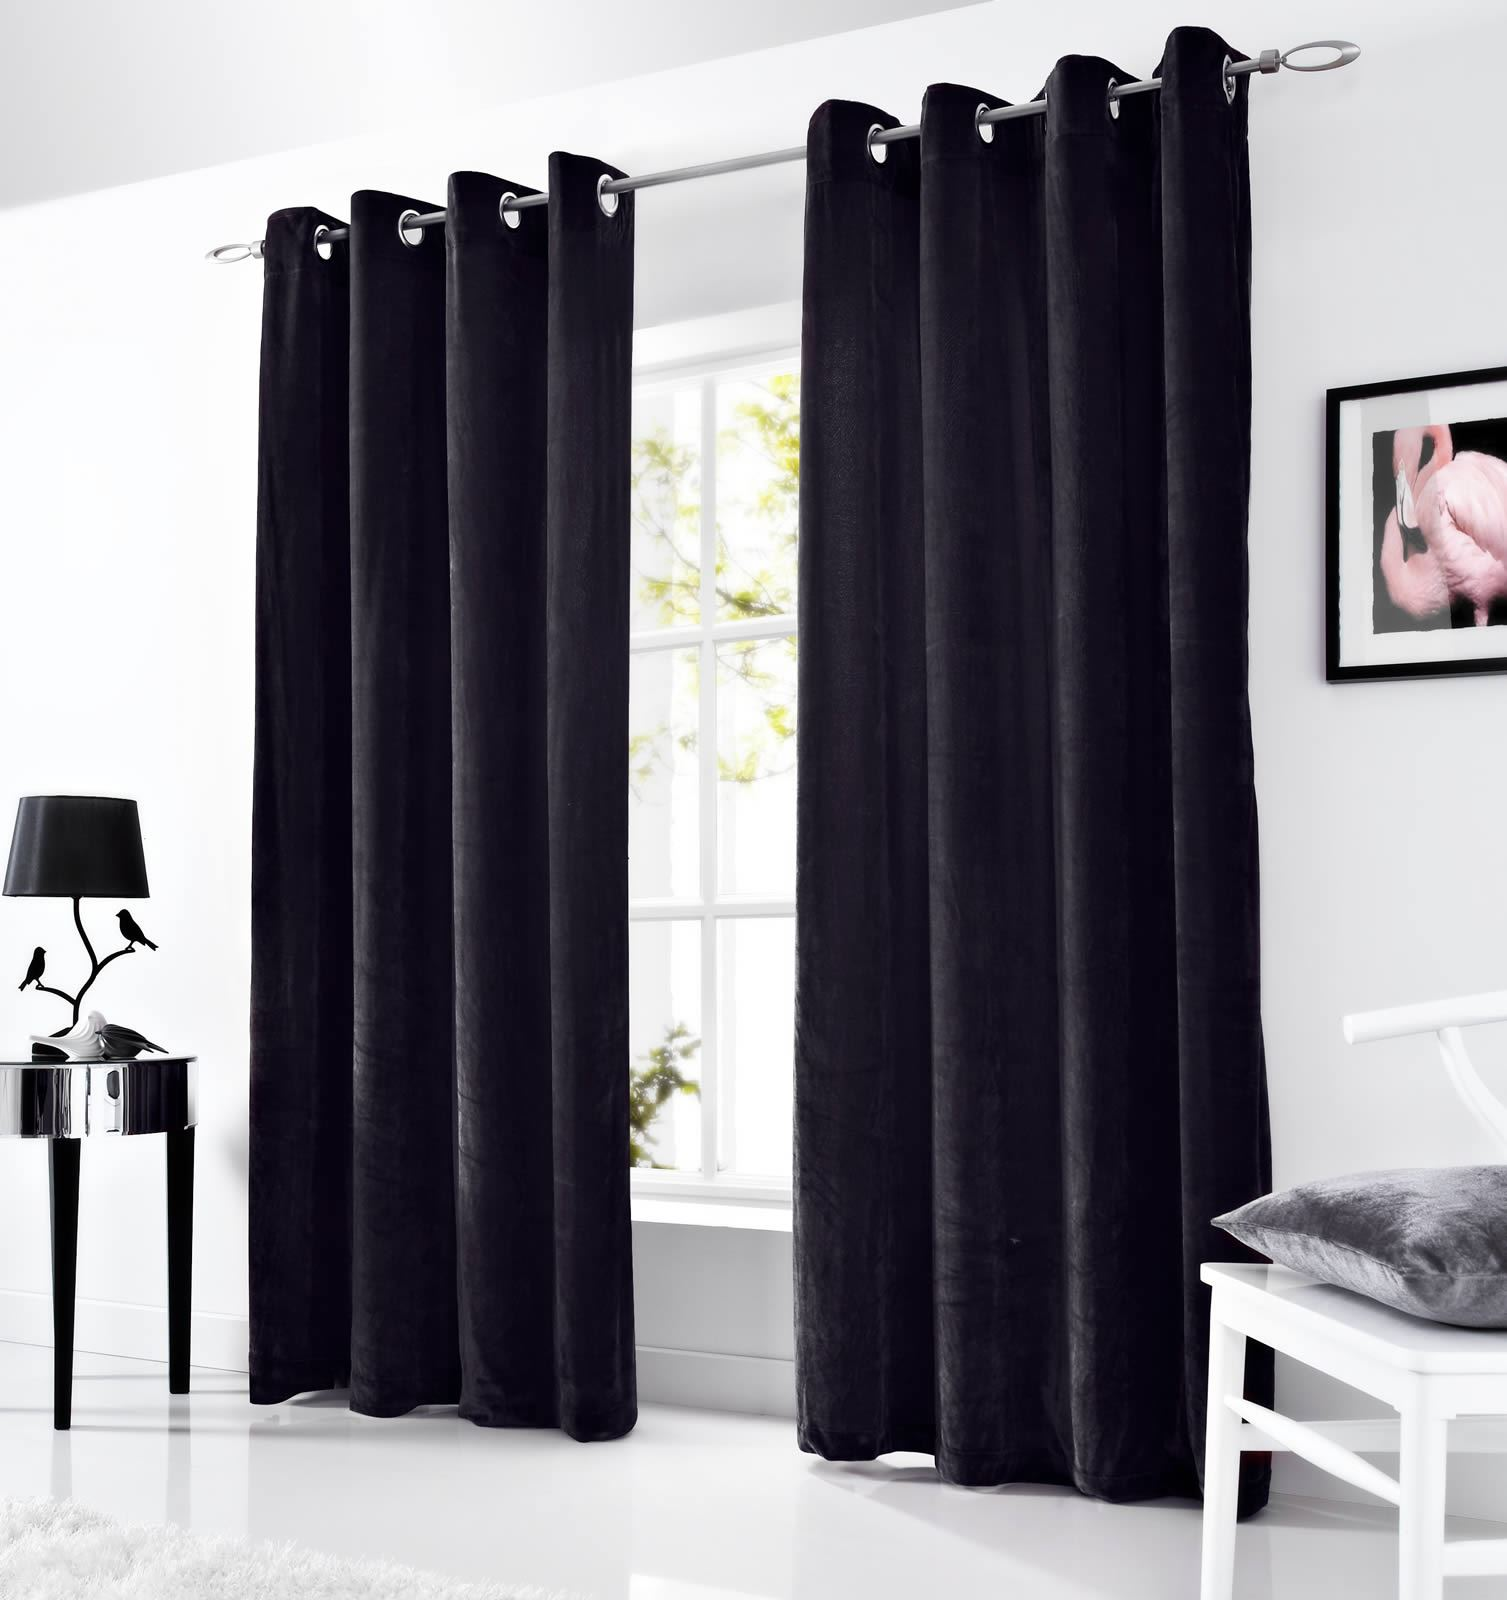 family cream curtains design window striped and dresser bright full simple size white designs living furniture for colours bedroom livin fun with sofa curtain blackout awesome modern treatment ideas go of black that room